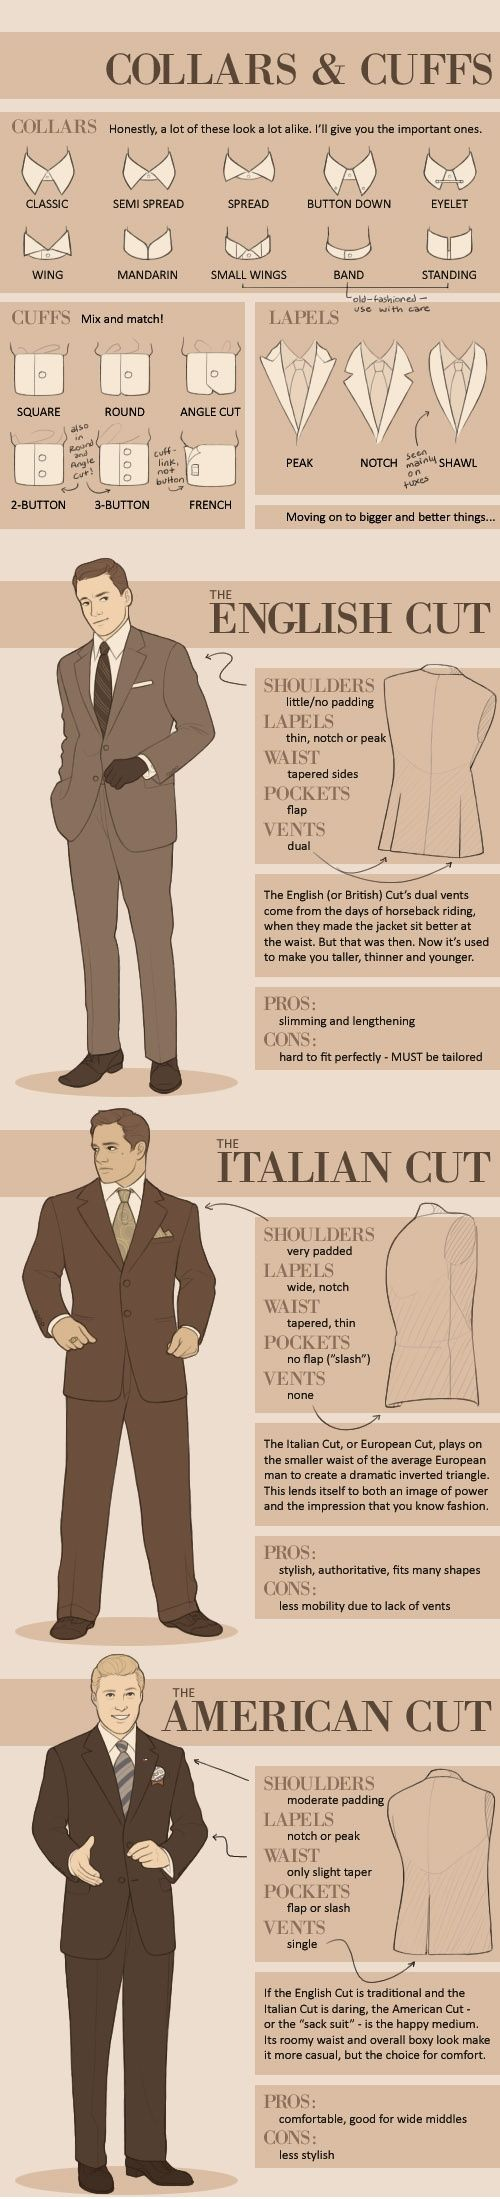 Guide to suits. Interesting.